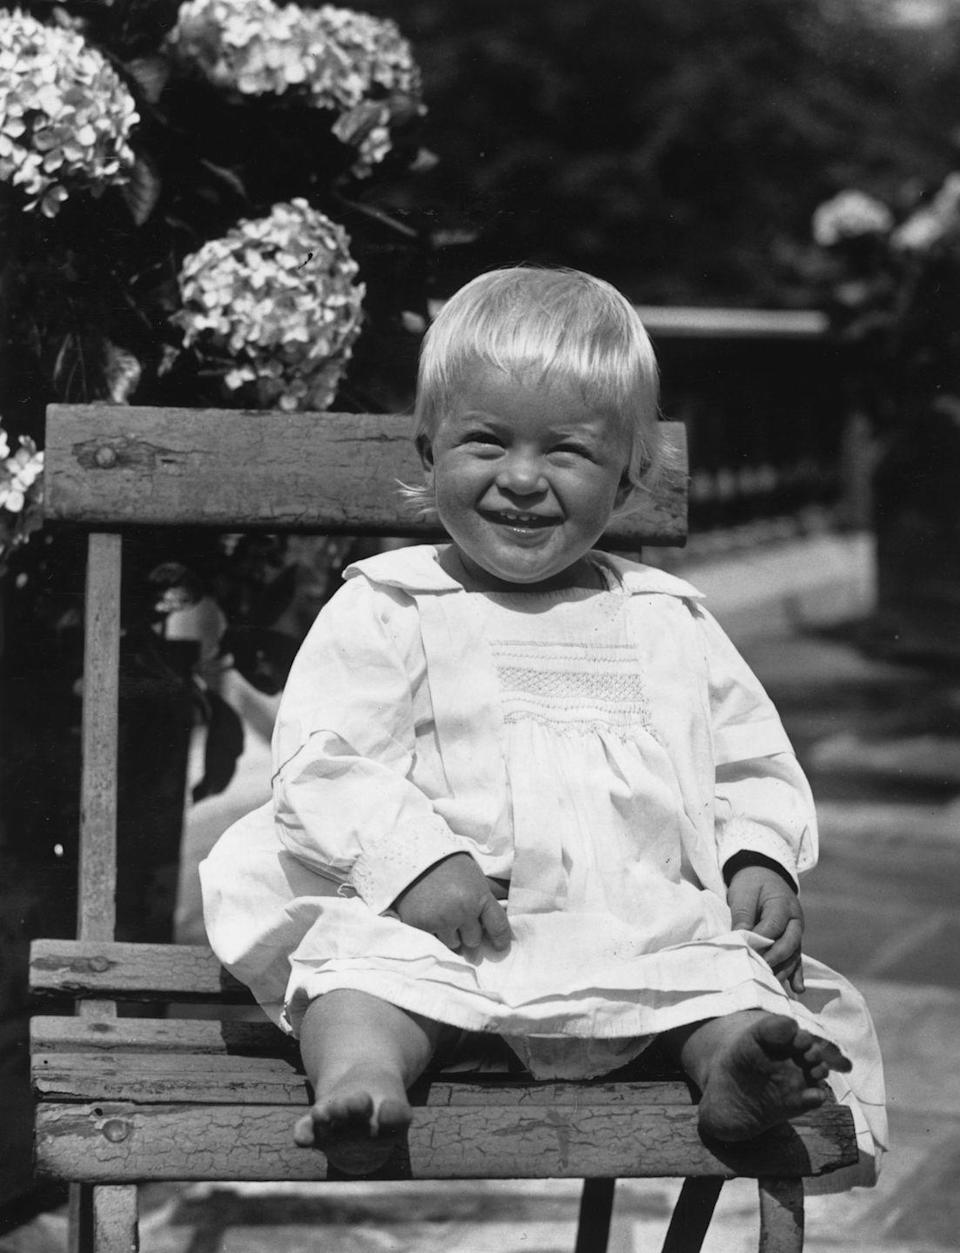 <p>Philip, who was born in Greece in June 1921, was exiled from the country with his family when his uncle, King Constantine, abdicated the throne. Some six months after this photo was taken, Philip and his family boarded the HMS Calypso and headed to Paris.</p>